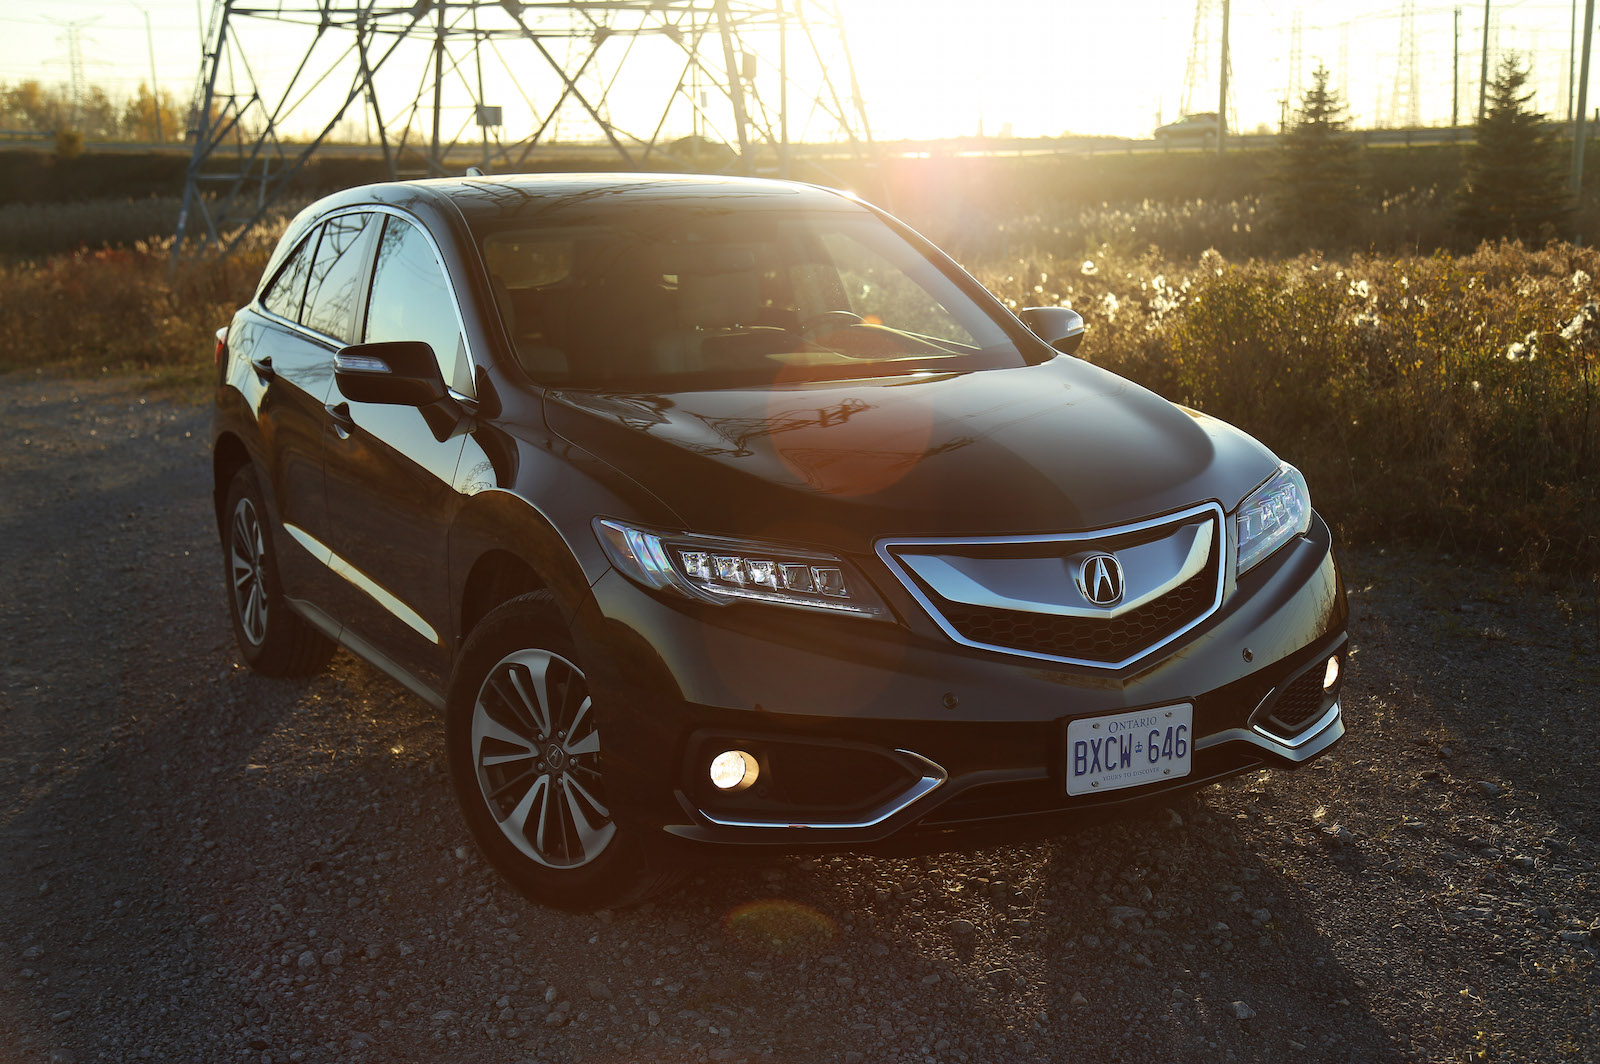 metallic htm mission steel review ca reeves rdx modern acura viejo reviews norm